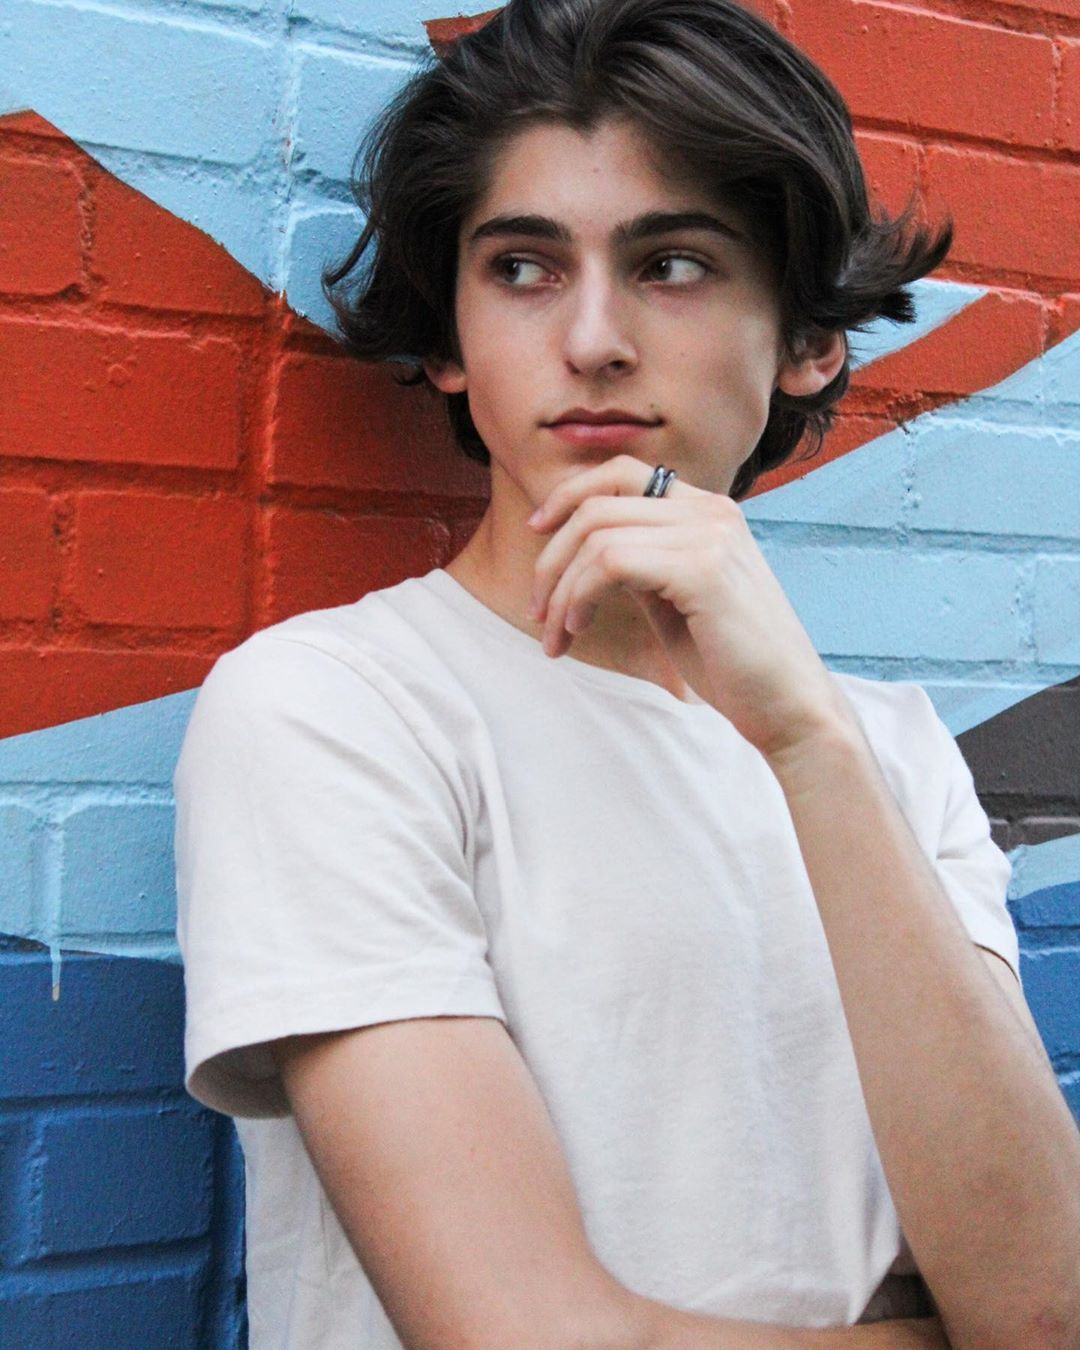 PATRICIO FERNANDEZ BIOGRAPHY, AGE, WIKI, FACTS, FAMILY AND MUCH MORE